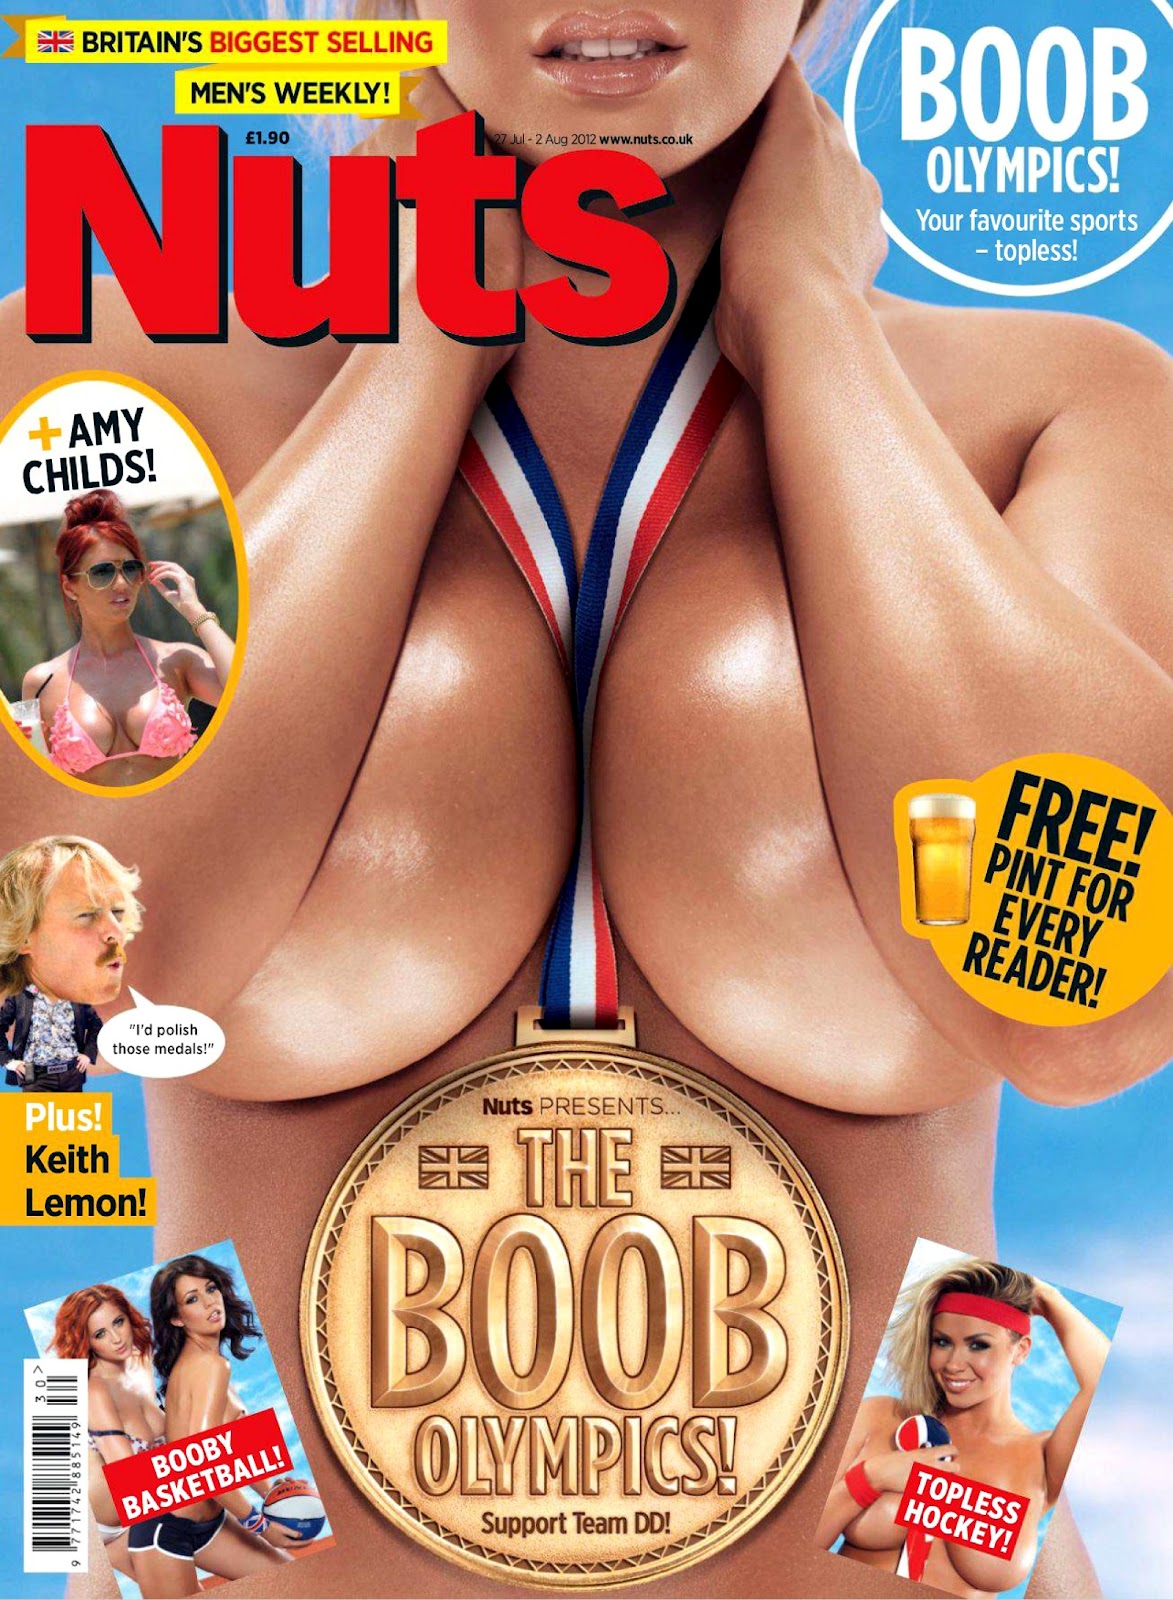 Speaking, Girls of nuts mag nude agree with